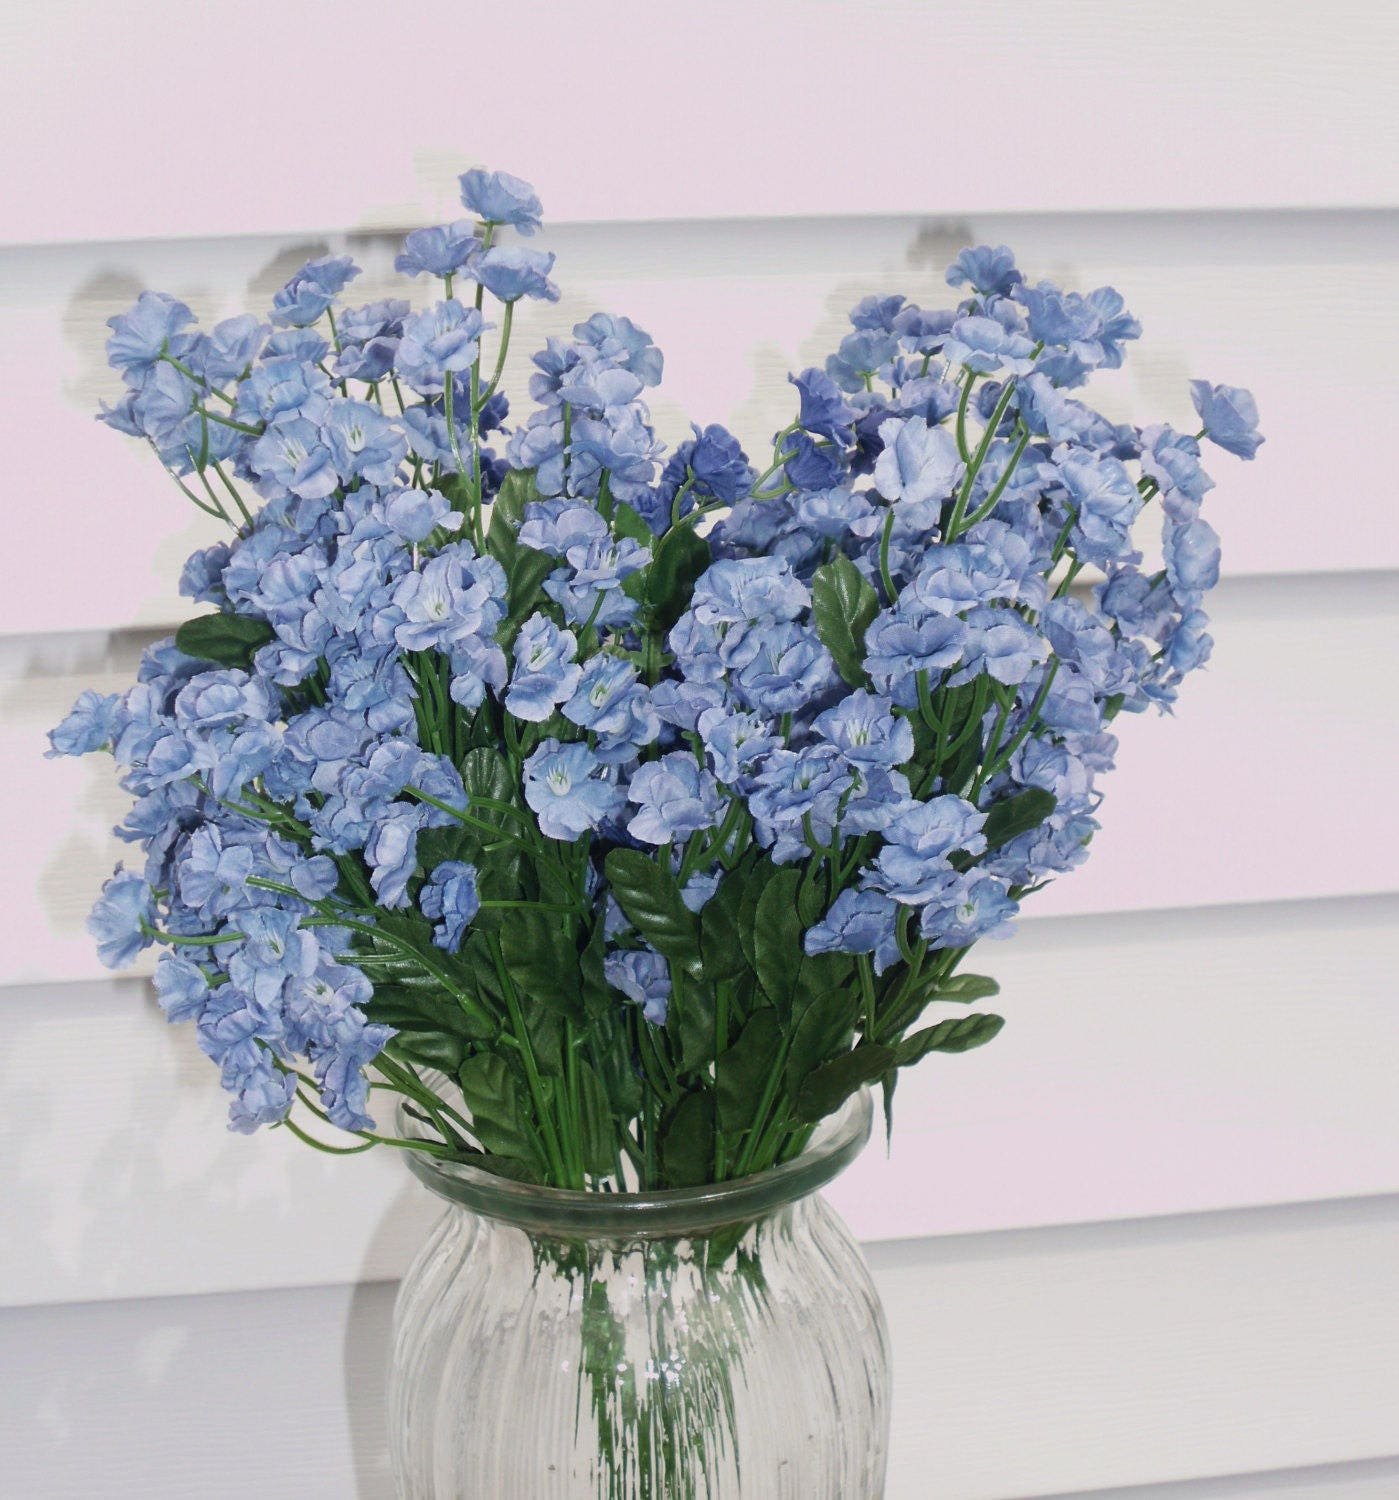 Blue Silk Double Babys Breath Filler Flower 8 Stems Wedding Etsy